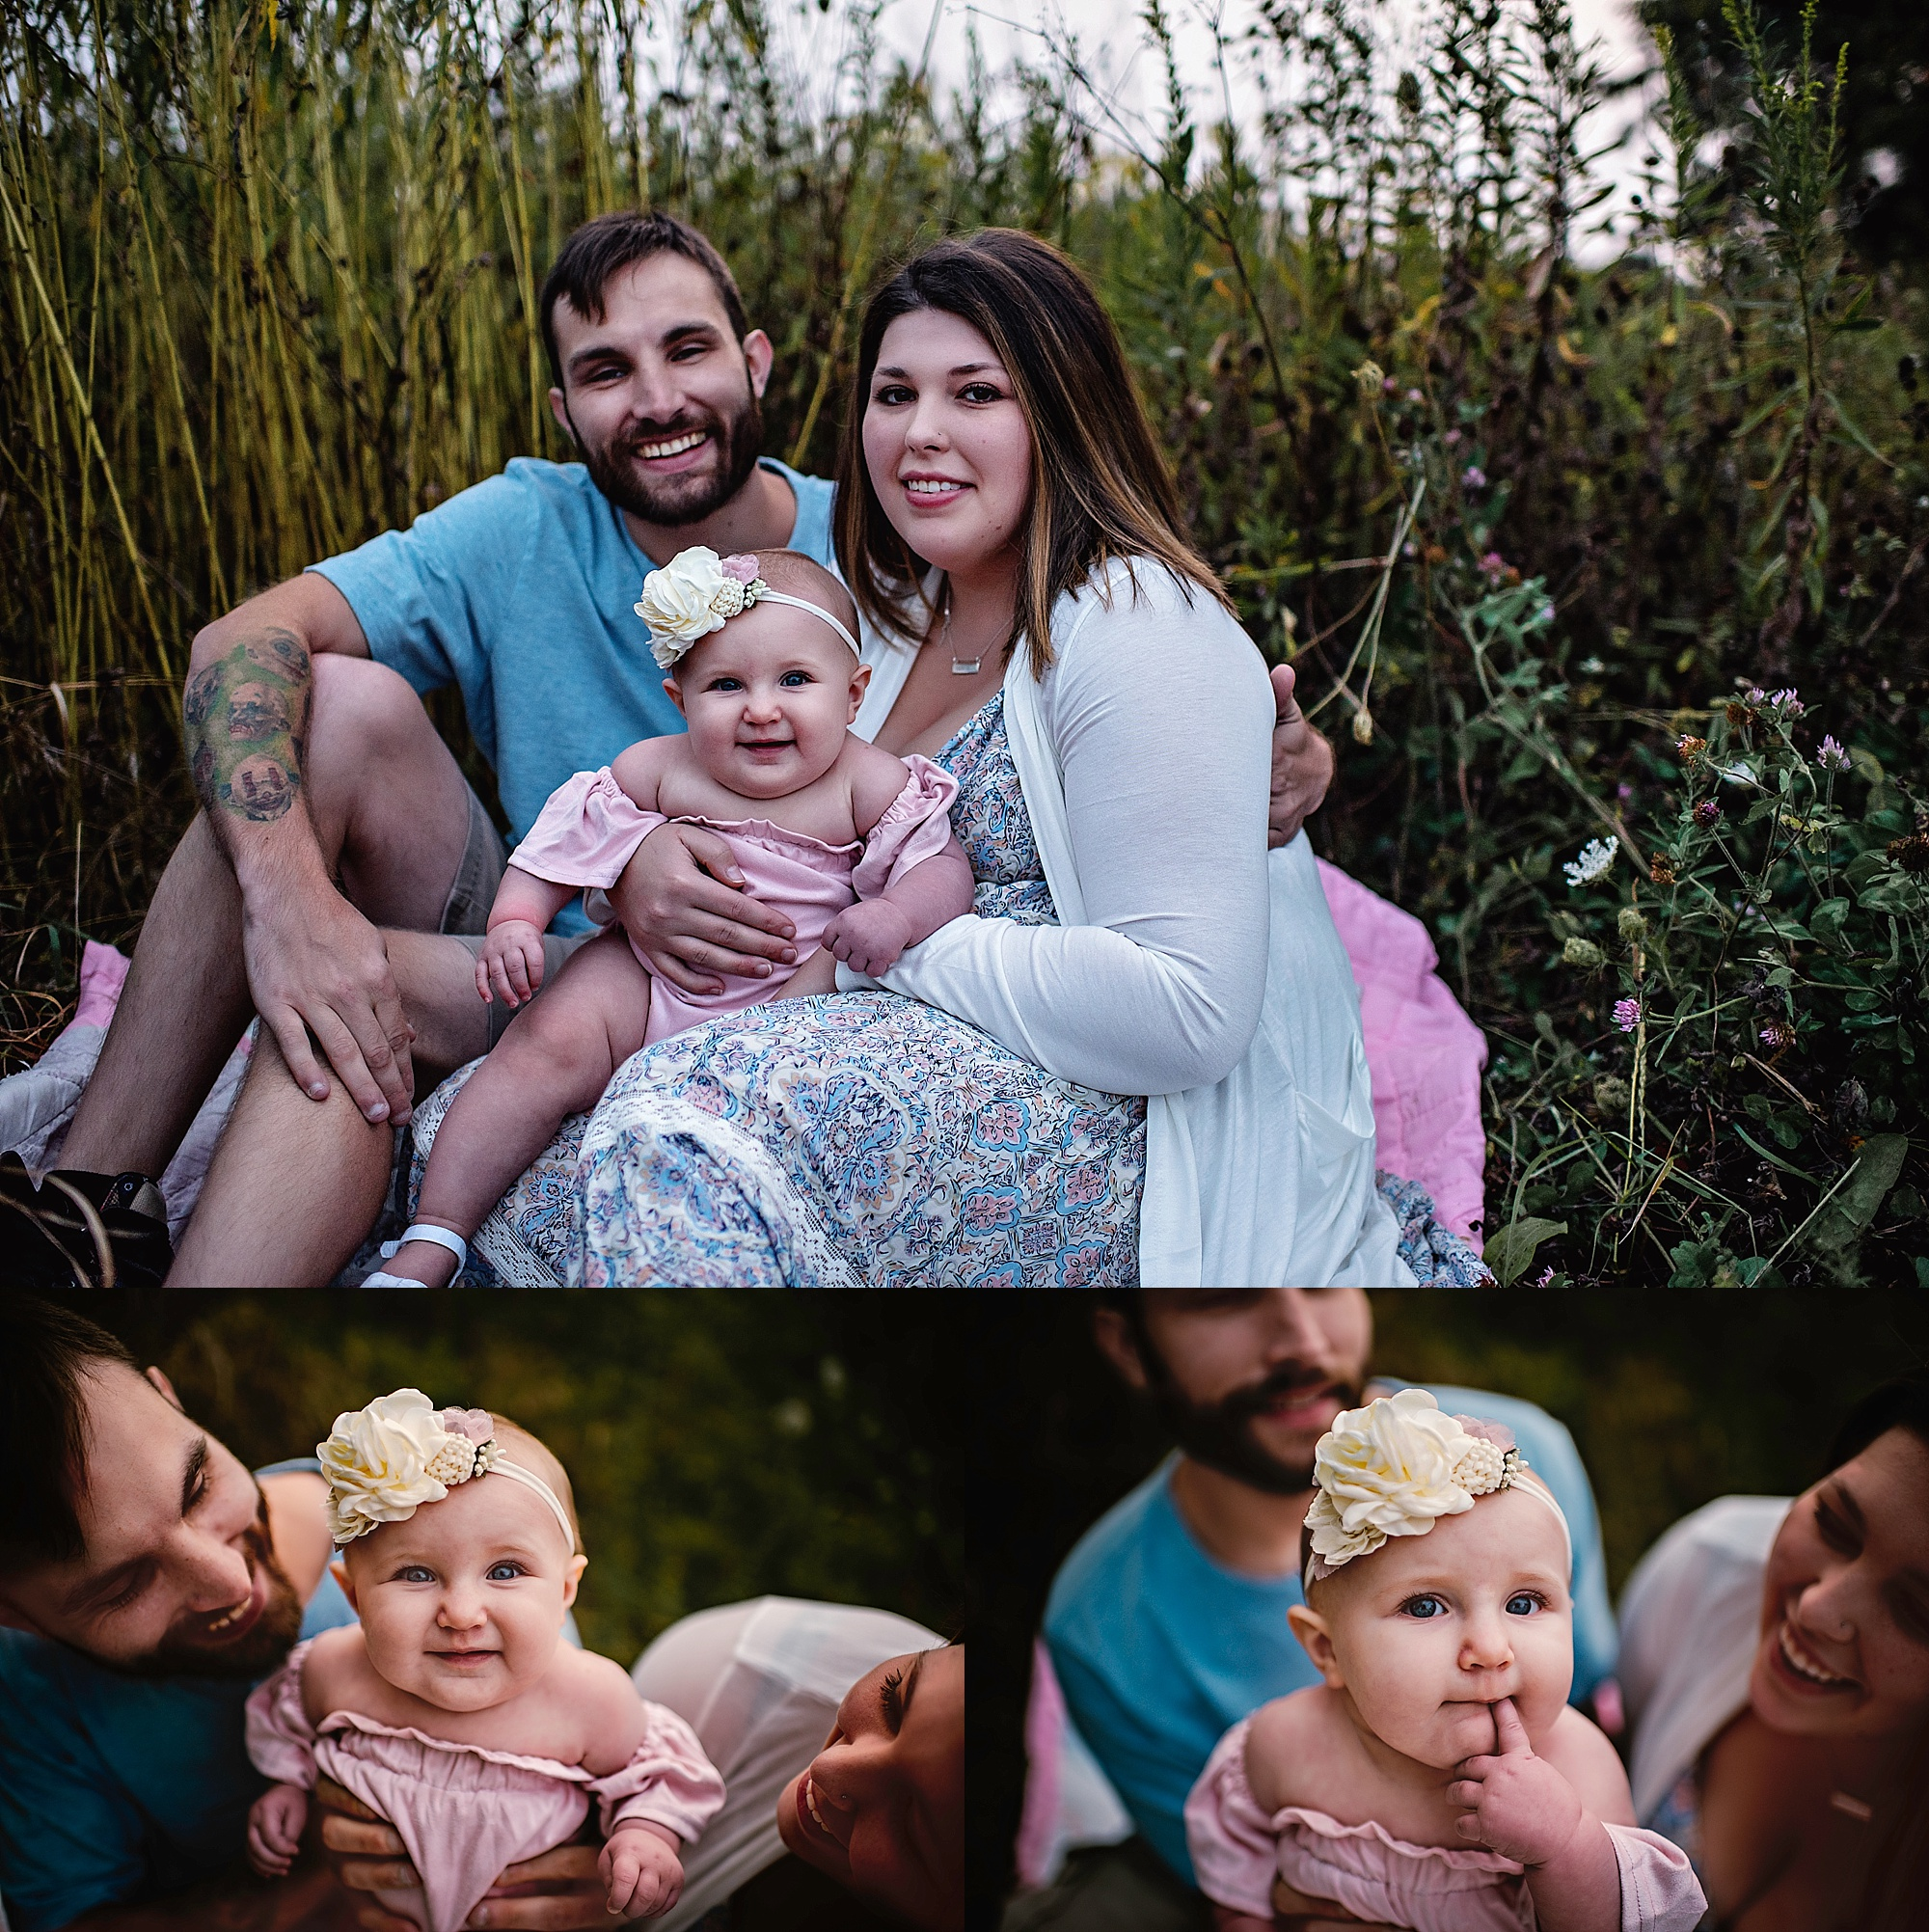 amber-lauren-grayson-photography-springfield-bog-akron-ohio-family-photographer_0023.jpg